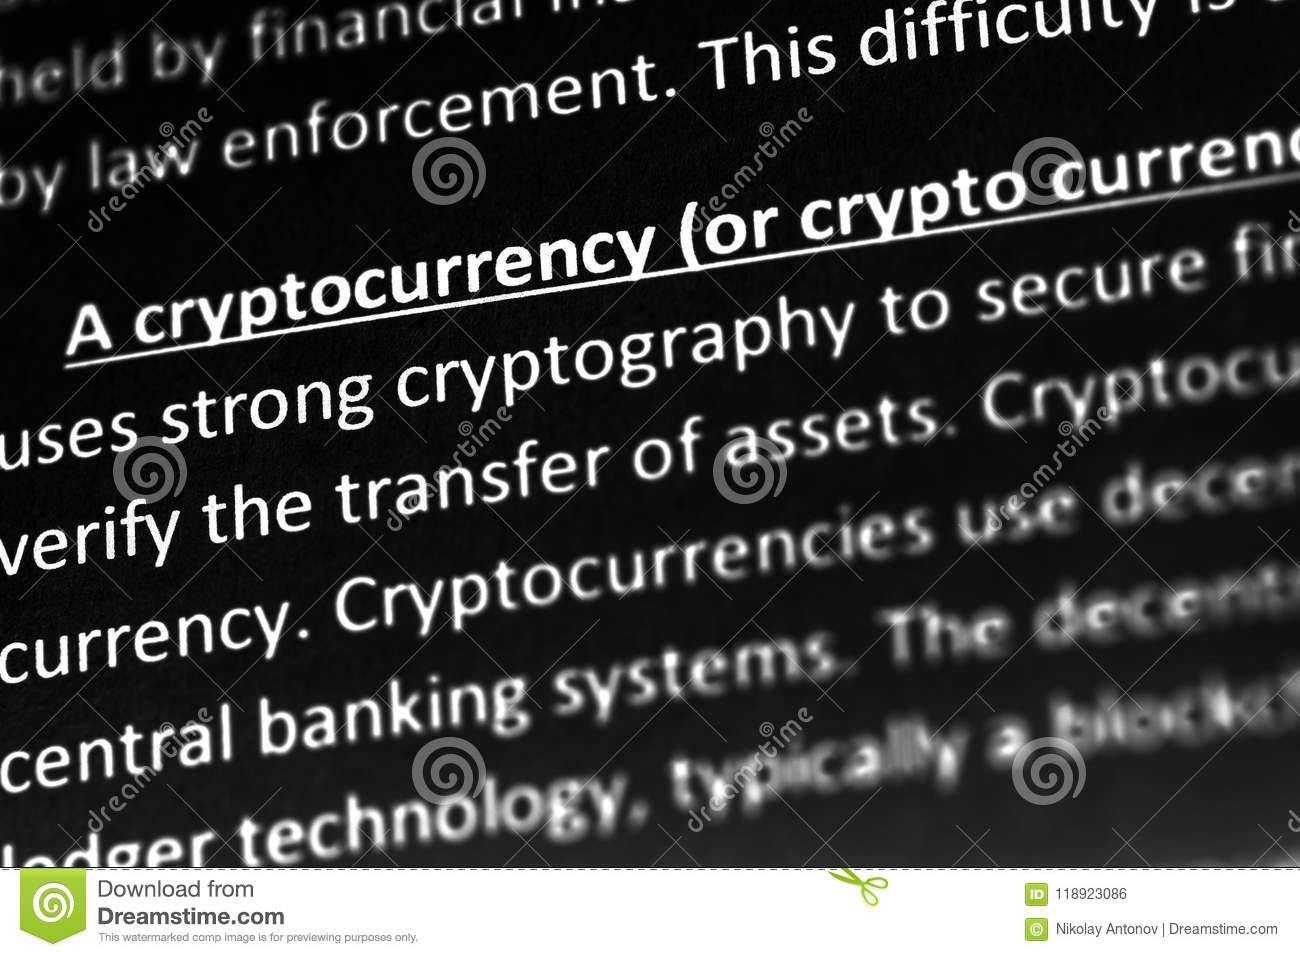 Cryptocurrency explanation or description in dictionary or article. Close up with focus on cryptocurrency.